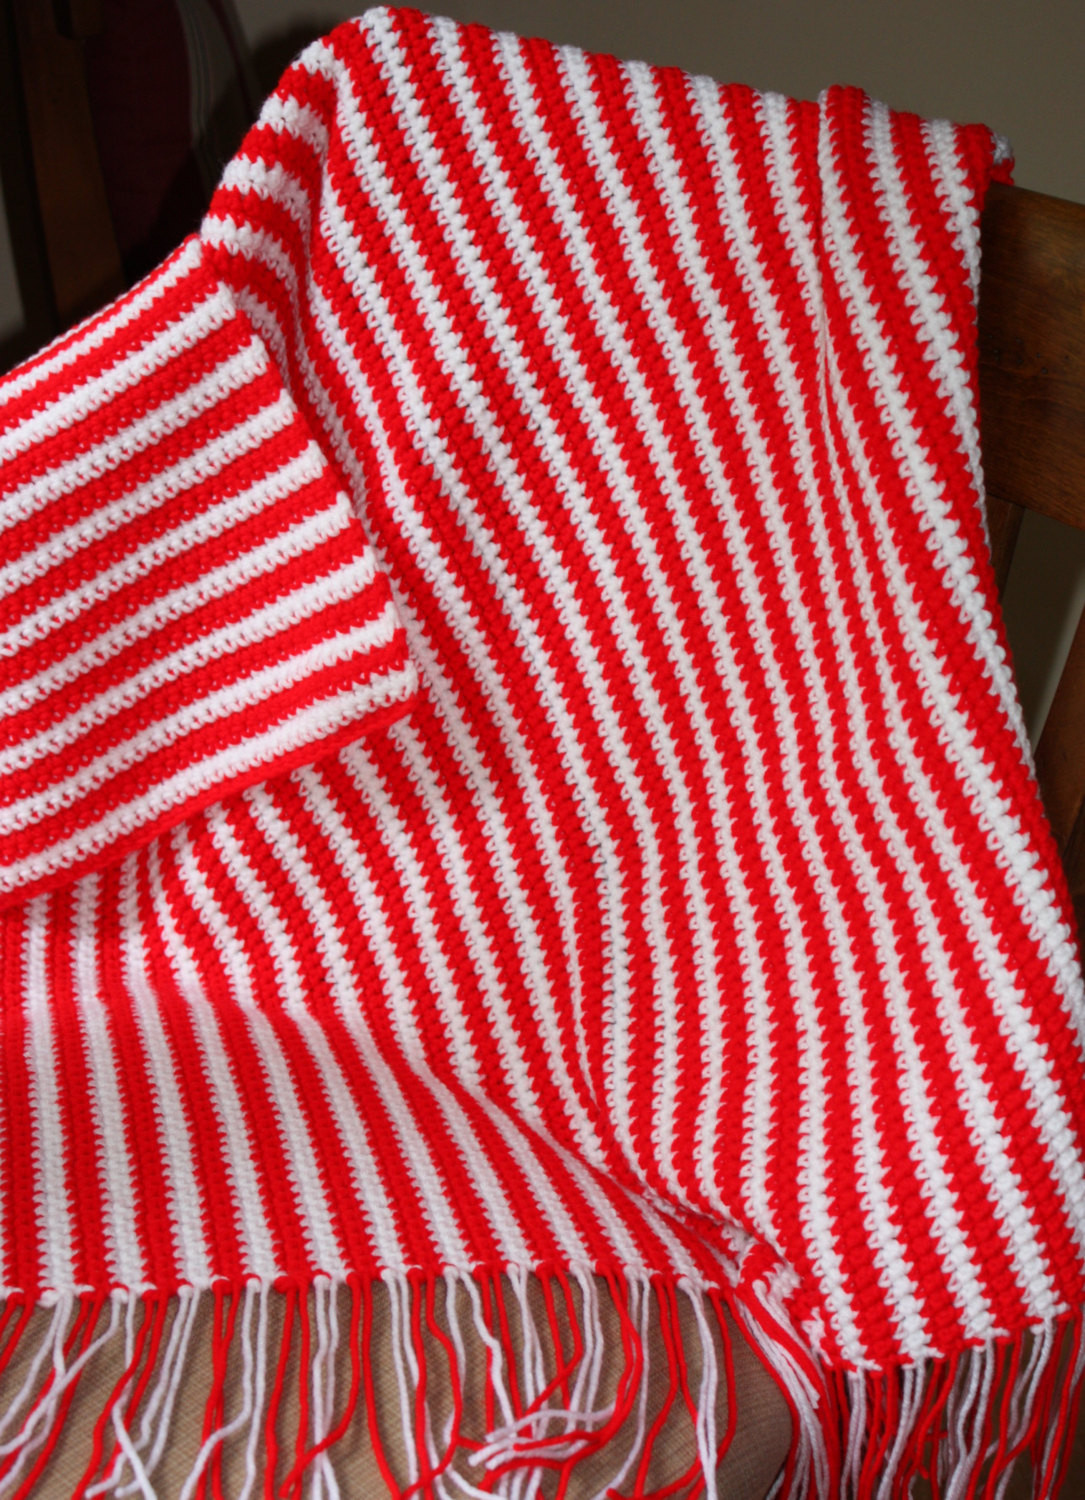 Striped Baby Blanket Elegant Red and White Striped Baby Afghan Peppermint Striped Afghan Of Lovely 48 Pics Striped Baby Blanket